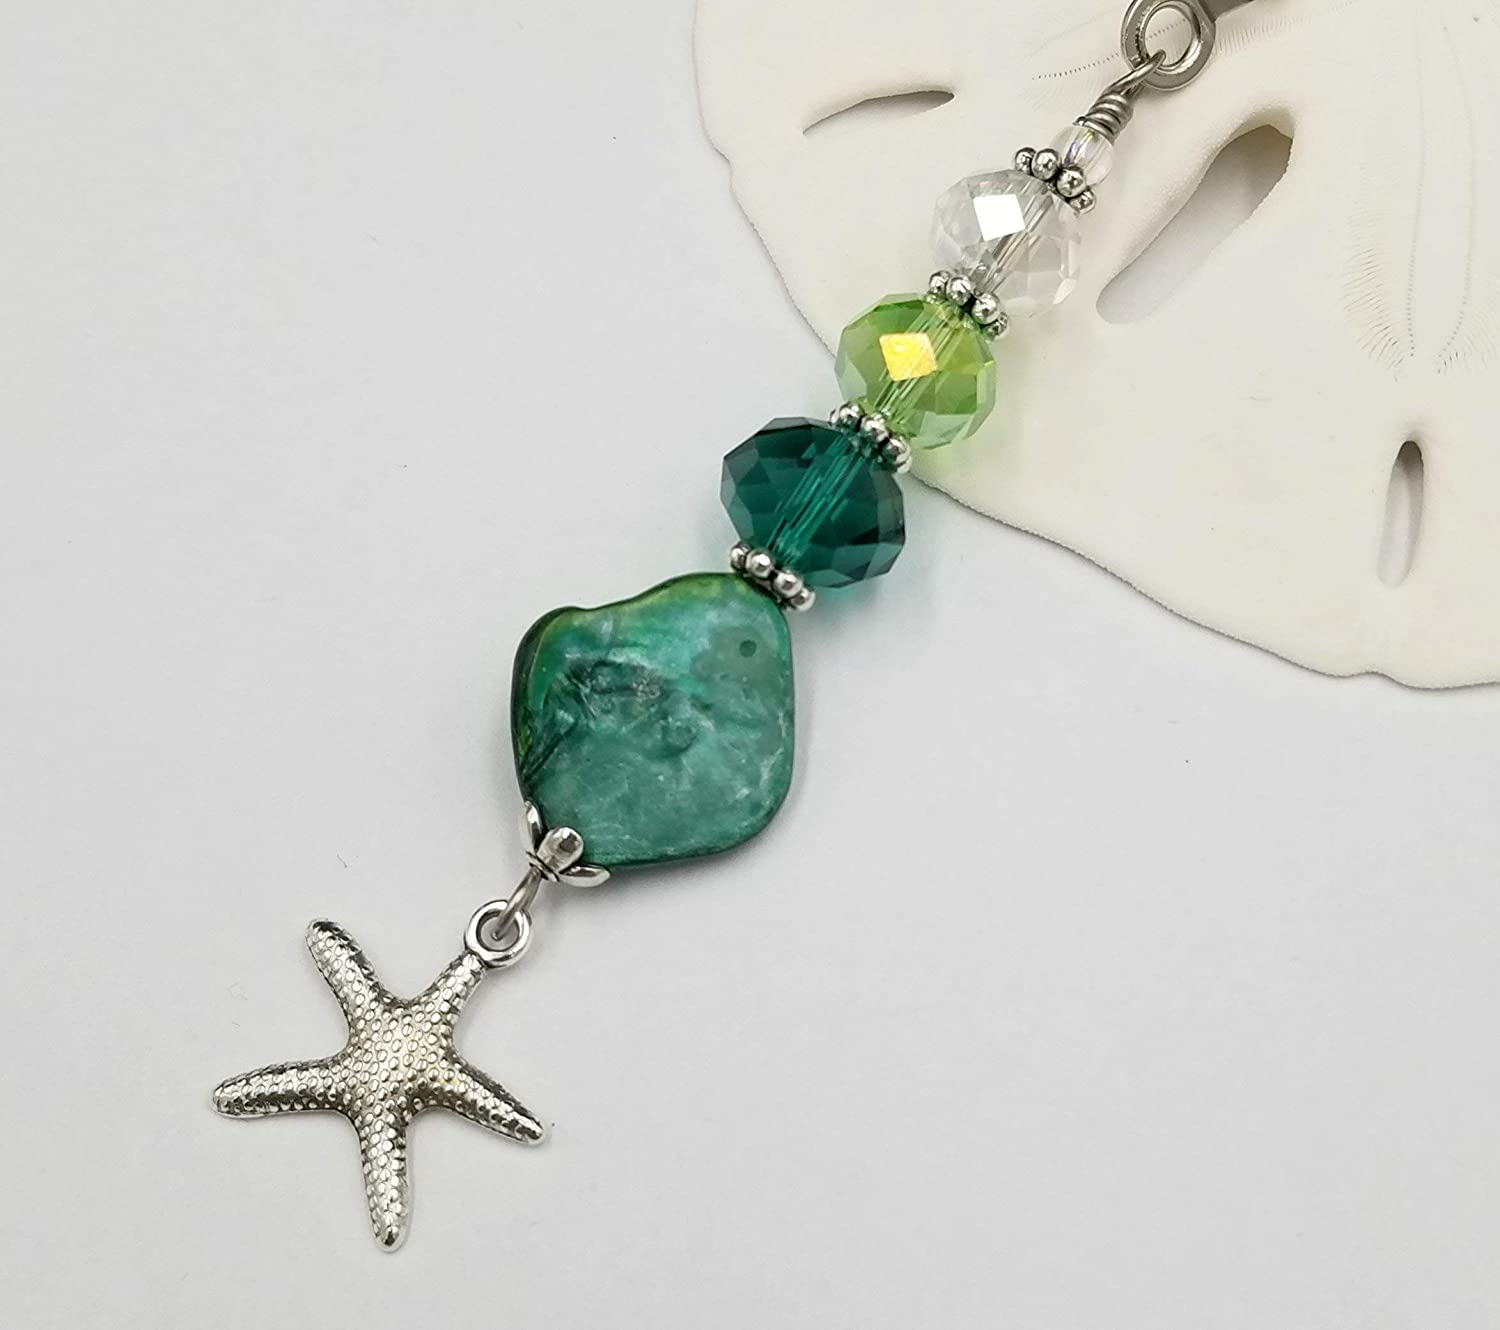 Fan or Light Pull Chain Green Seashell with Starfish